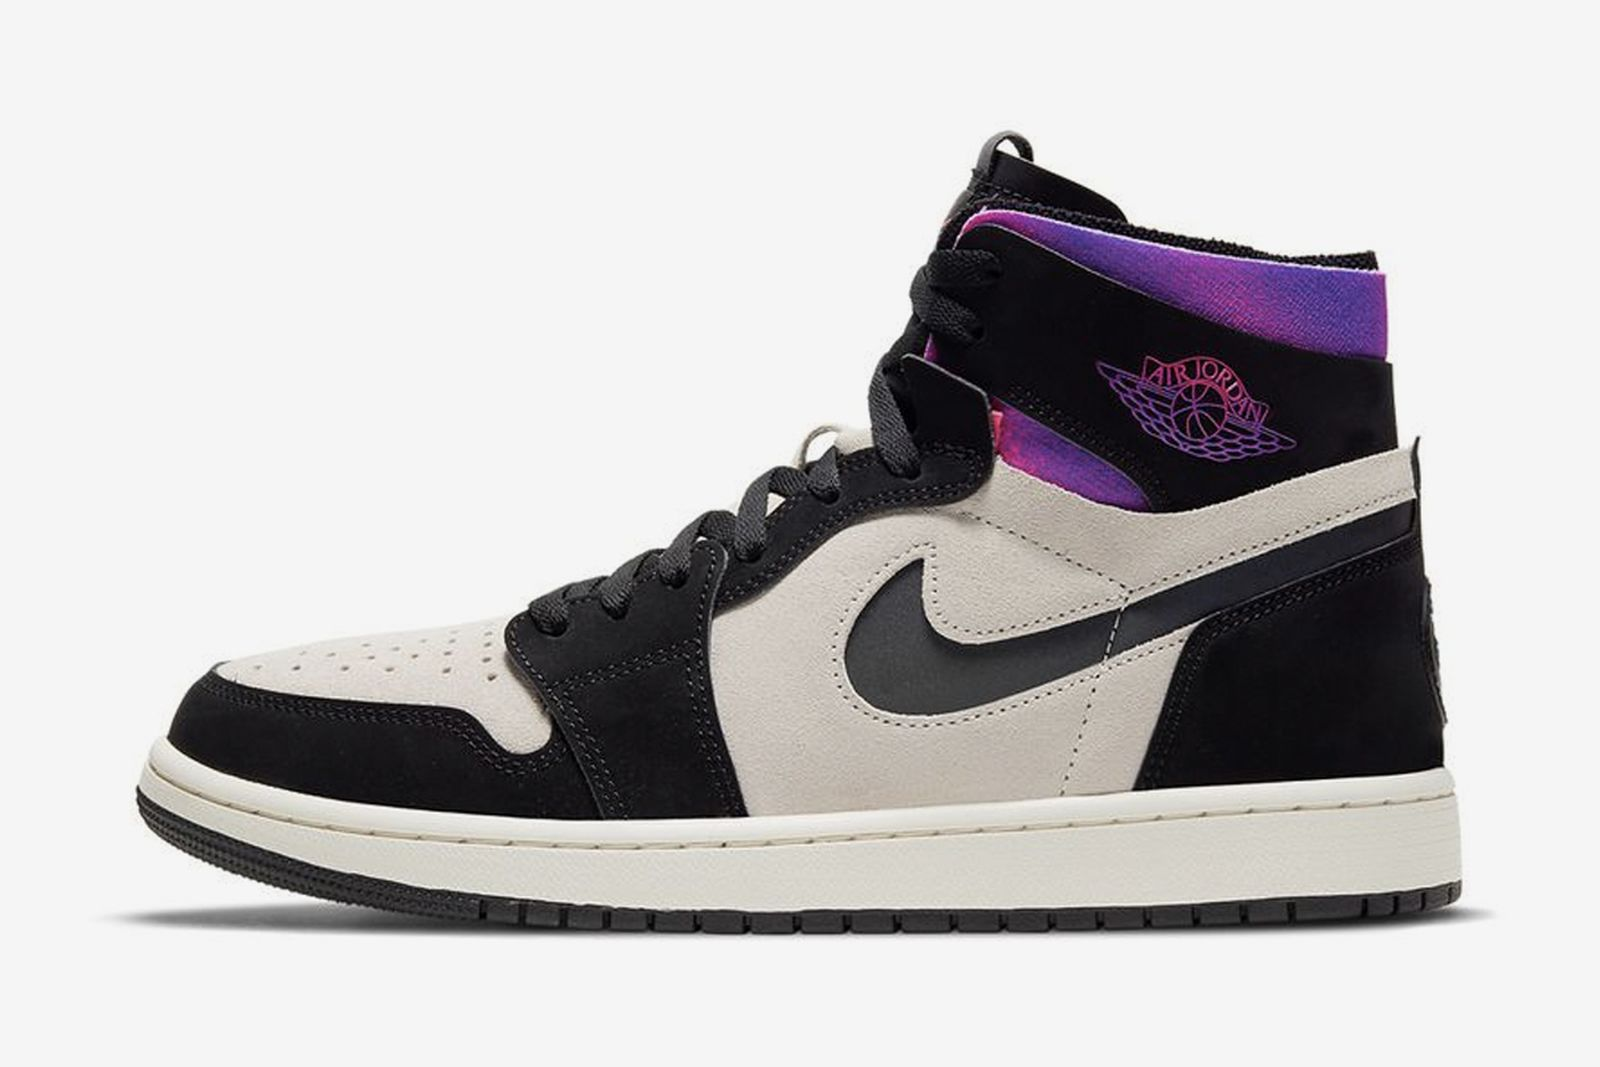 tormenta veinte Becks  Paris Saint-Germain's New Air Jordan 1 Is Better Than the Last